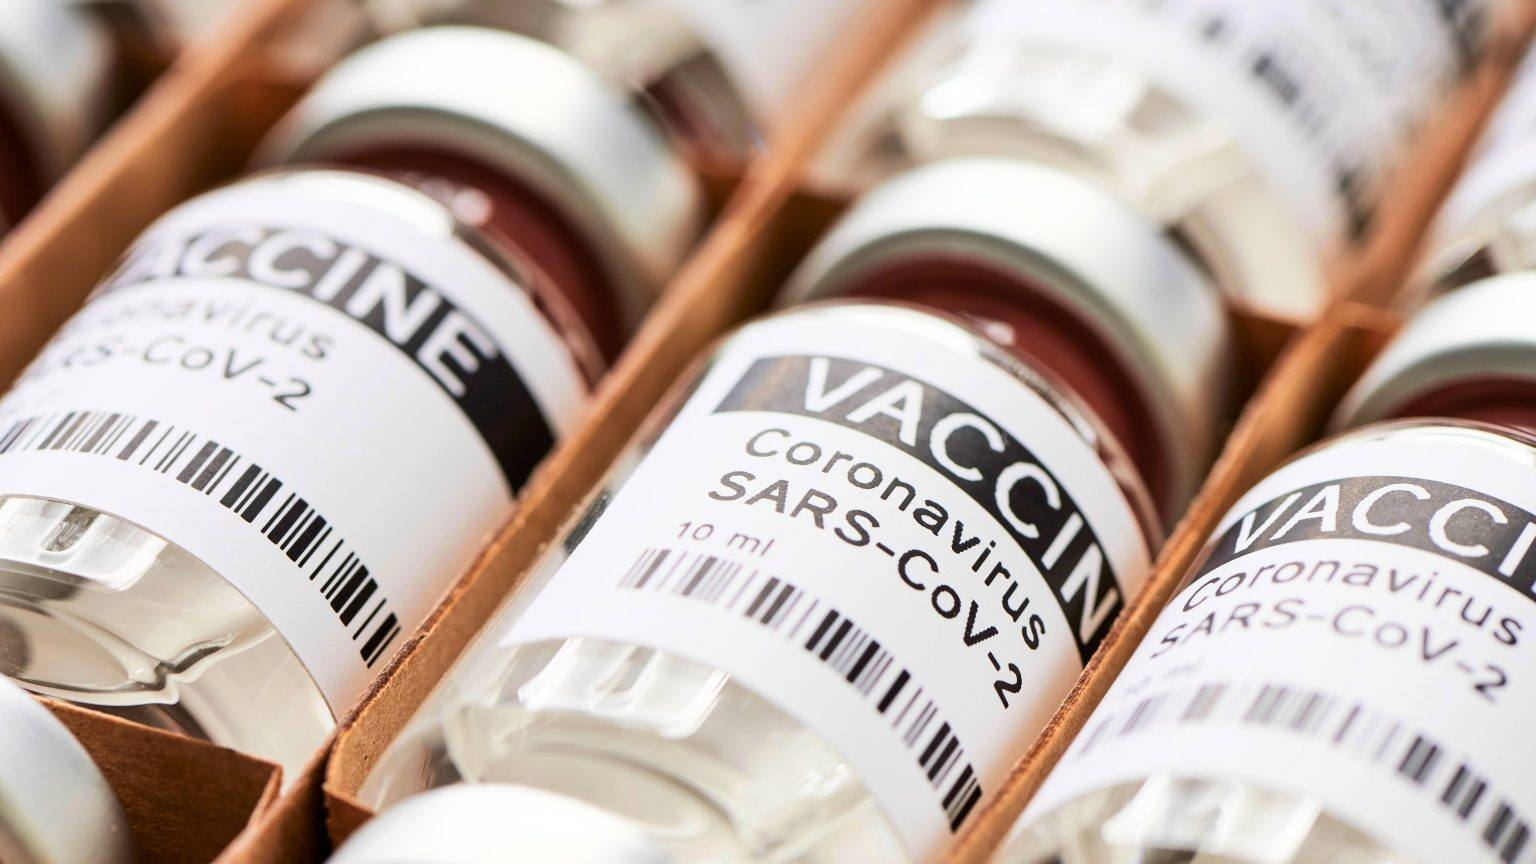 ratory-vials-labeled-COVID-19-Coronavirus-SARS-CoV-2-Vaccine-in-a-delivery-box-16x9-1-1536x864